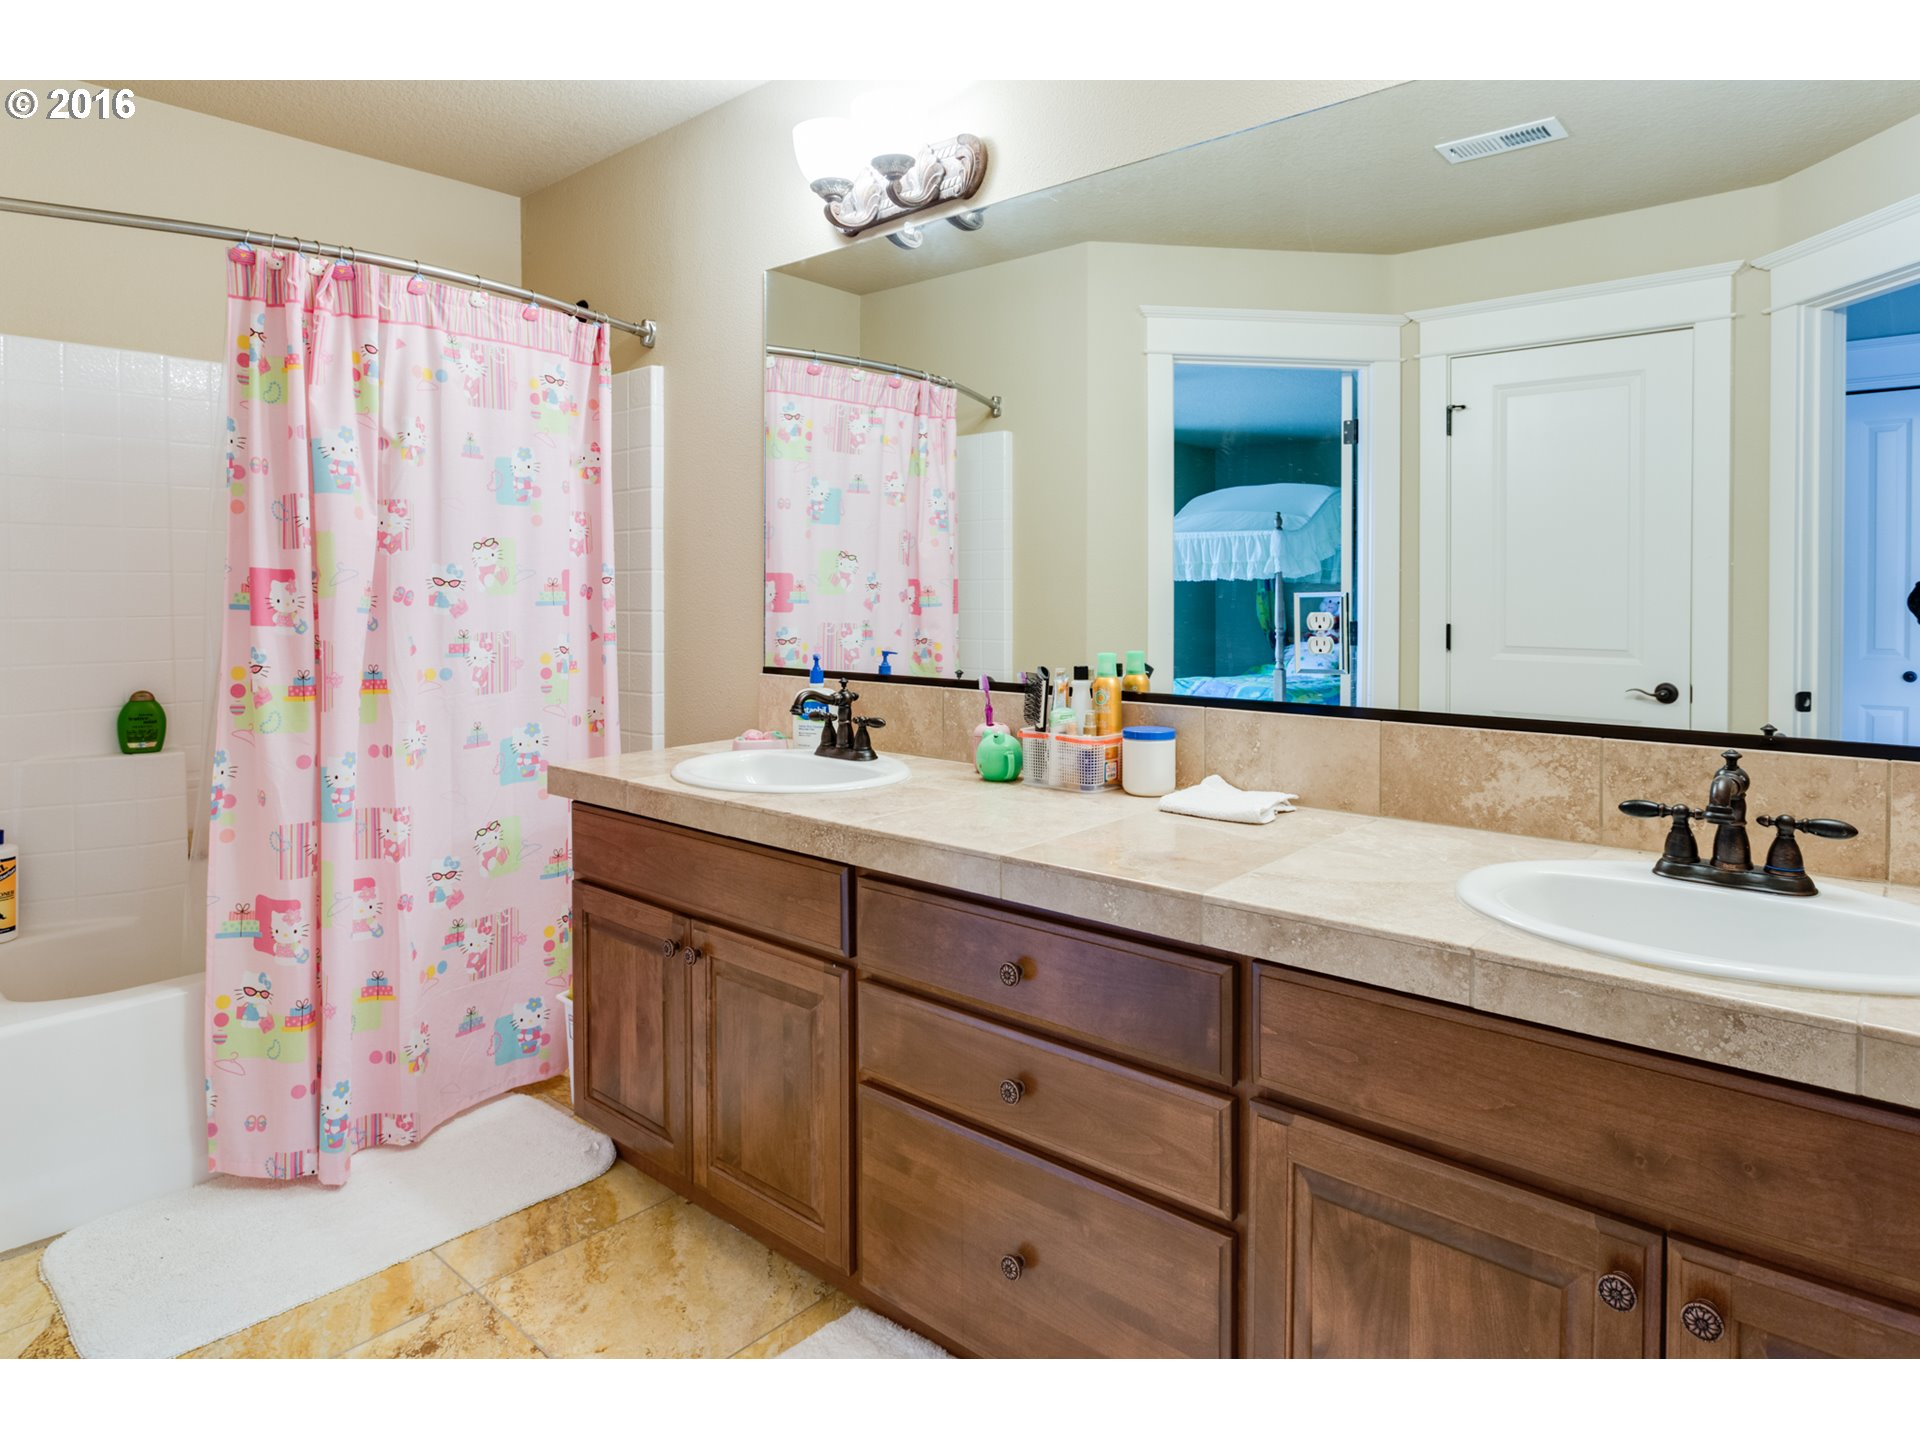 BATHROOM MATT MORRIS 360-773-7333